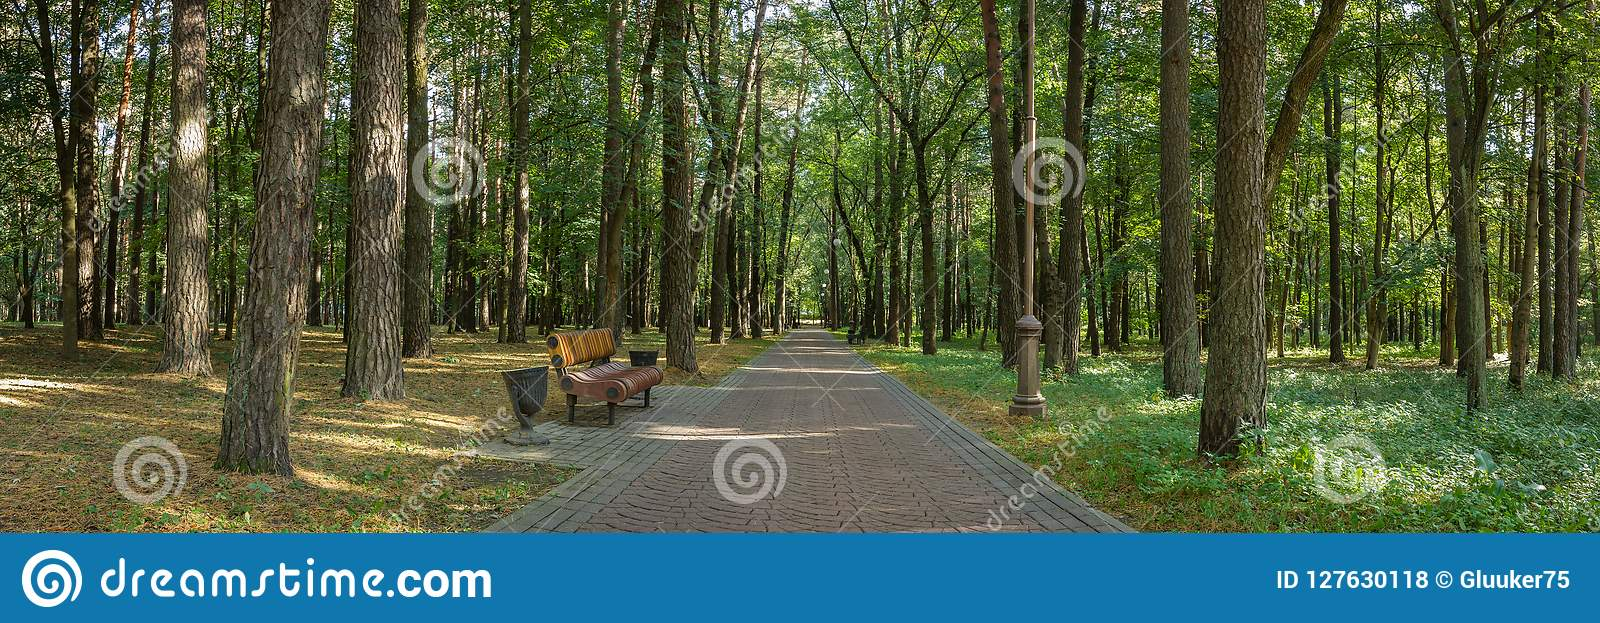 panoramic view of the public city park with a bench on the edge of a neat shady alley lined with tall trees